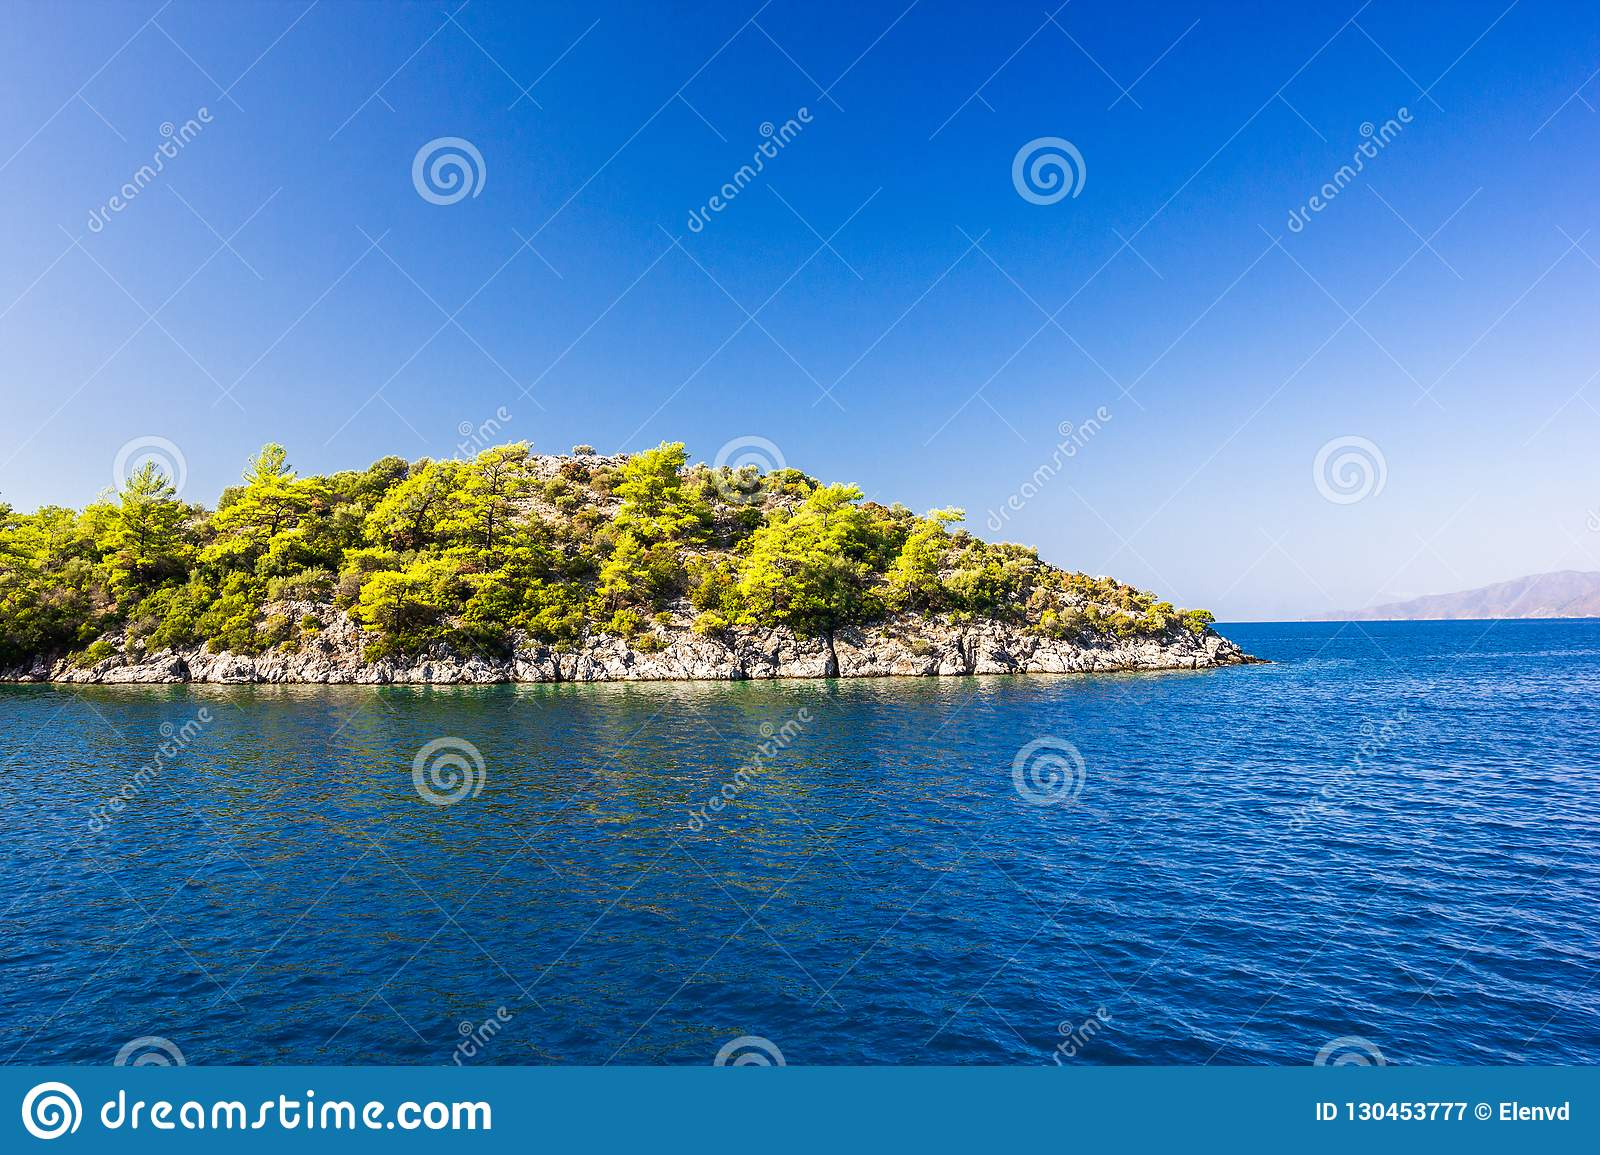 Rocky island in the Aegean sea on a clear day